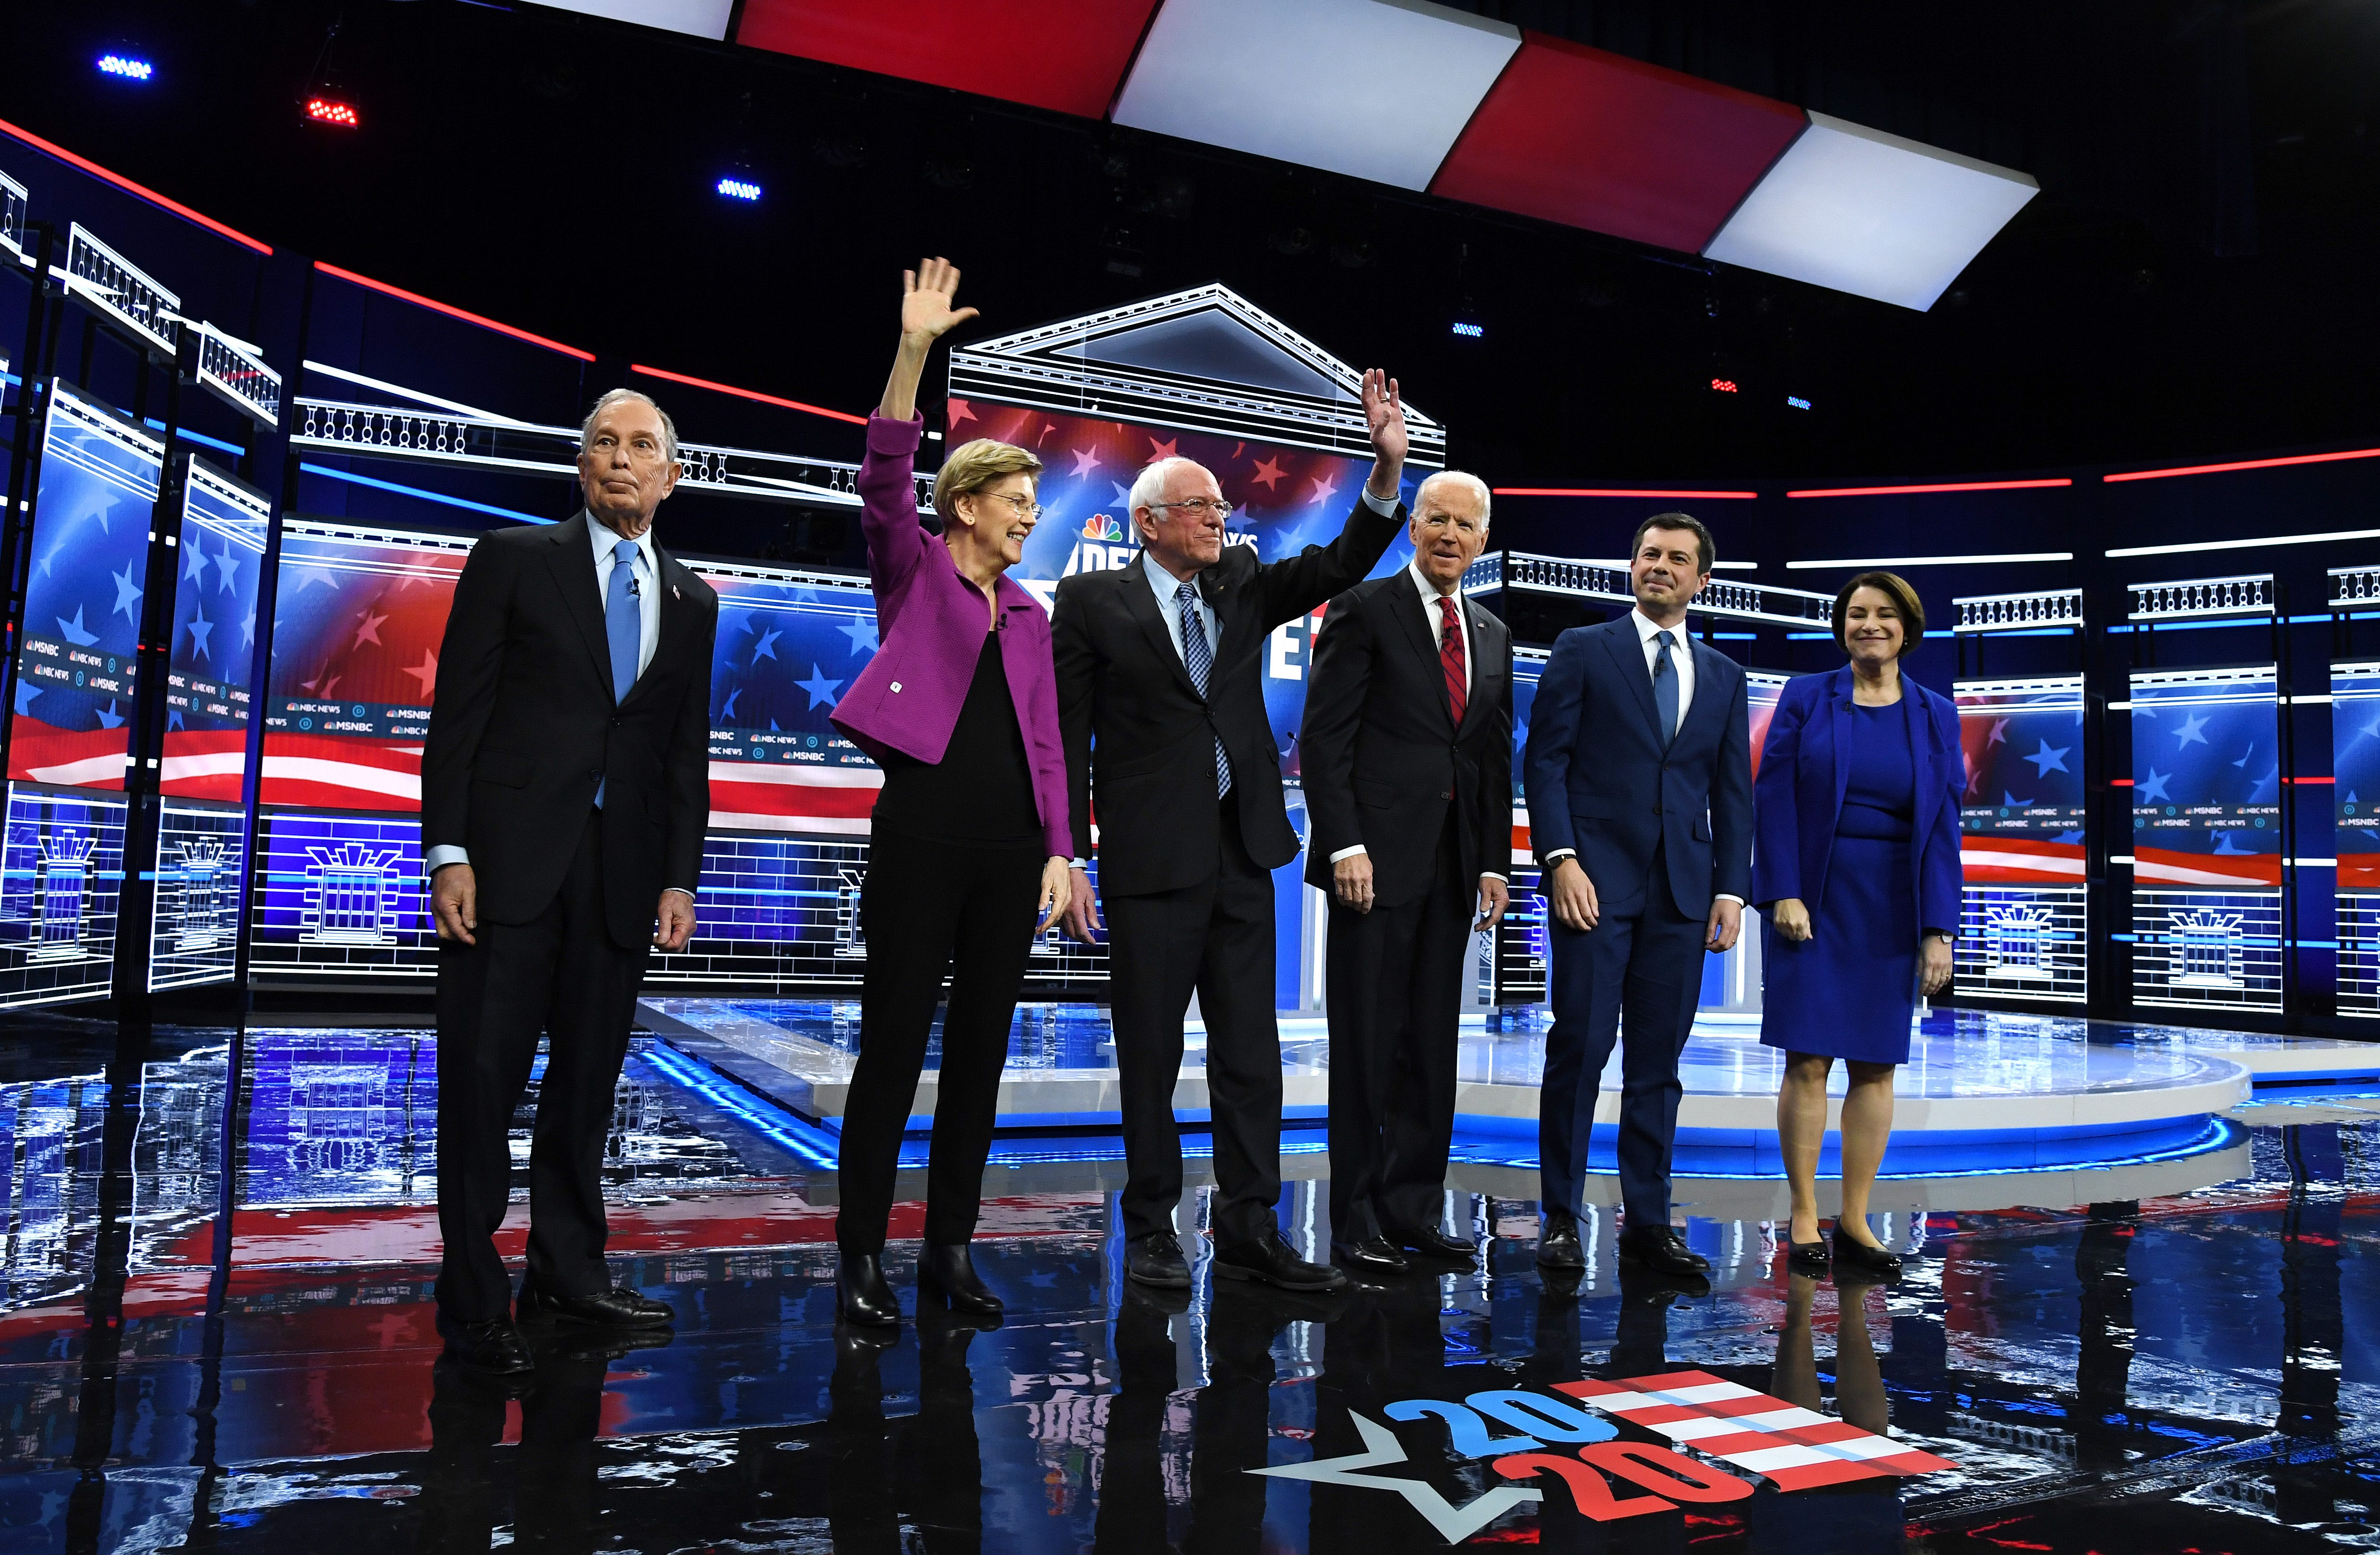 South Carolina Democratic debate: How to watch, who has made the stage, and what to expect